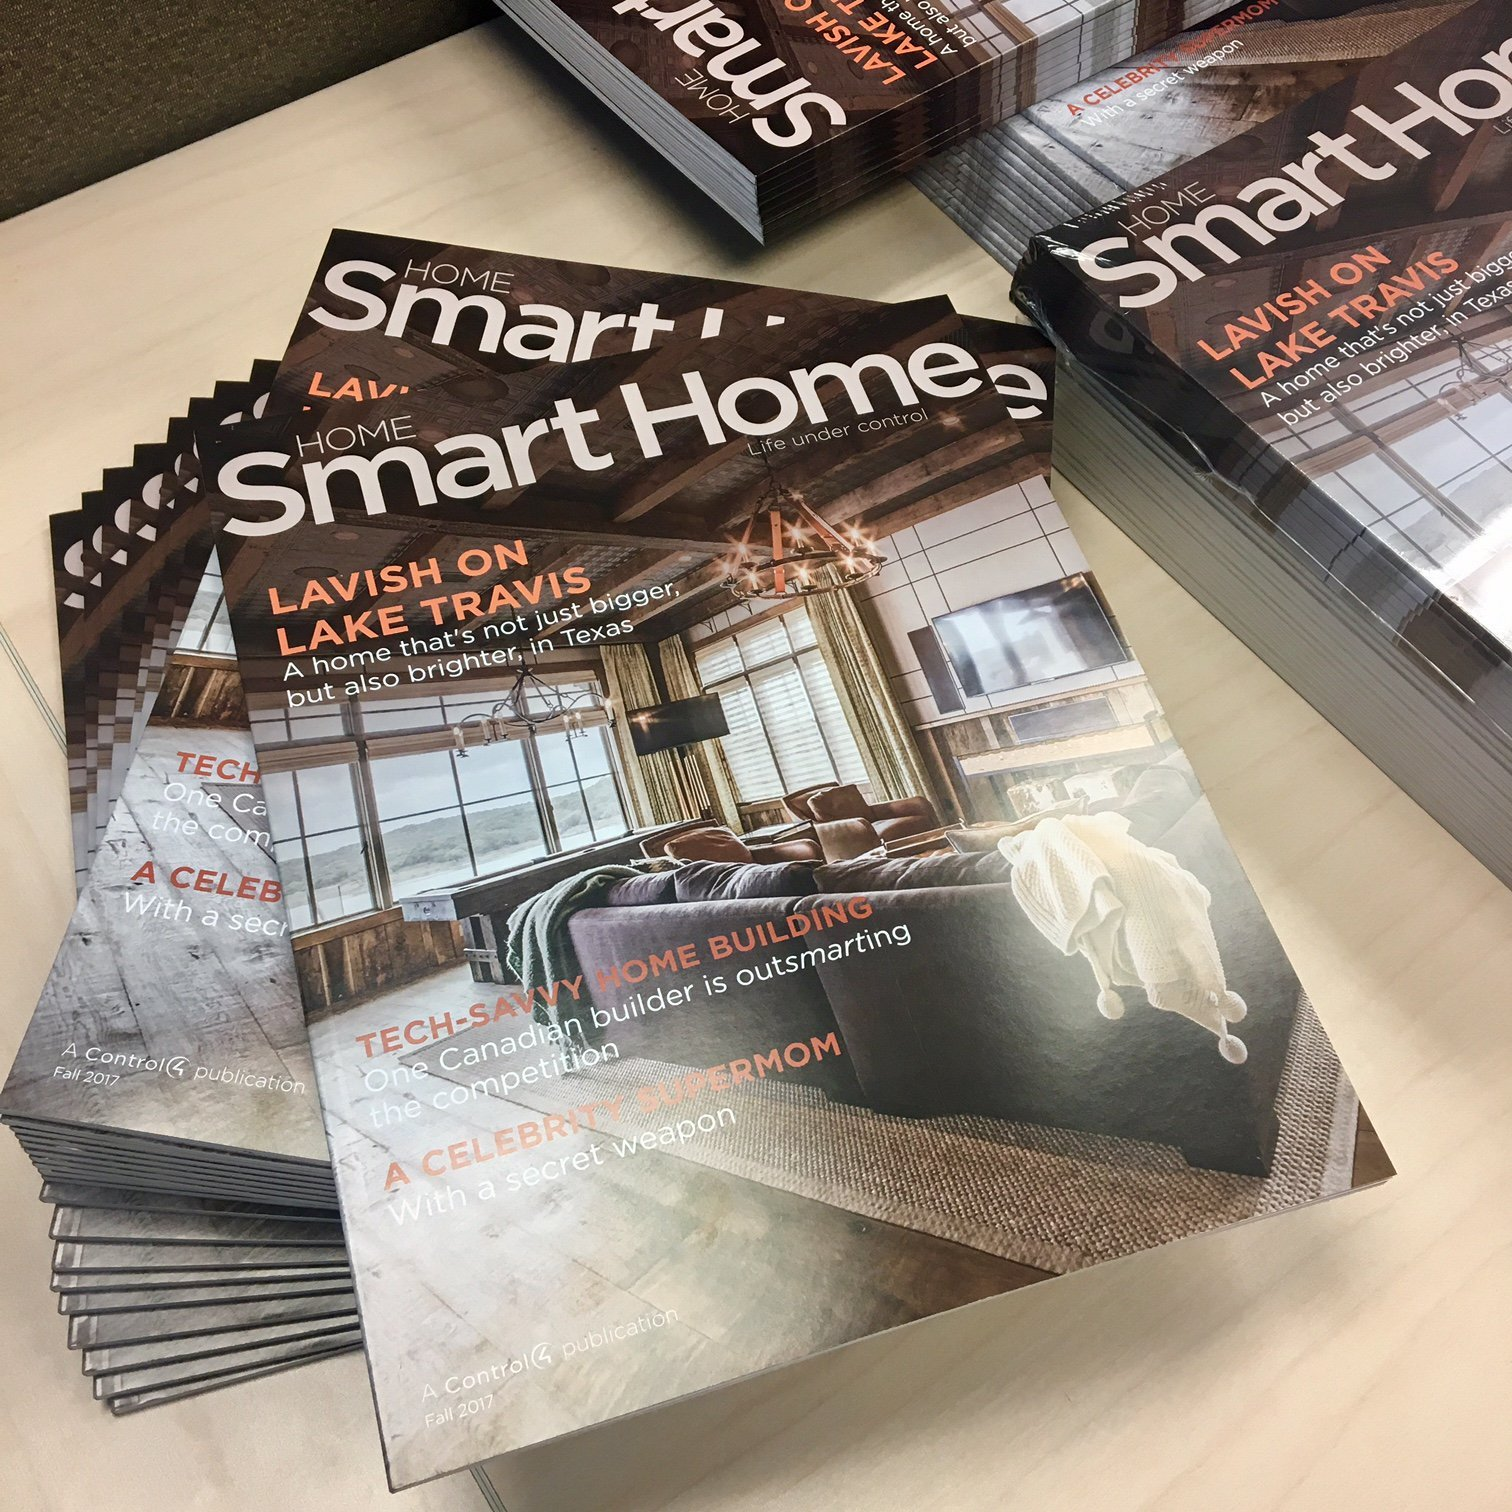 Home smart home magazine download